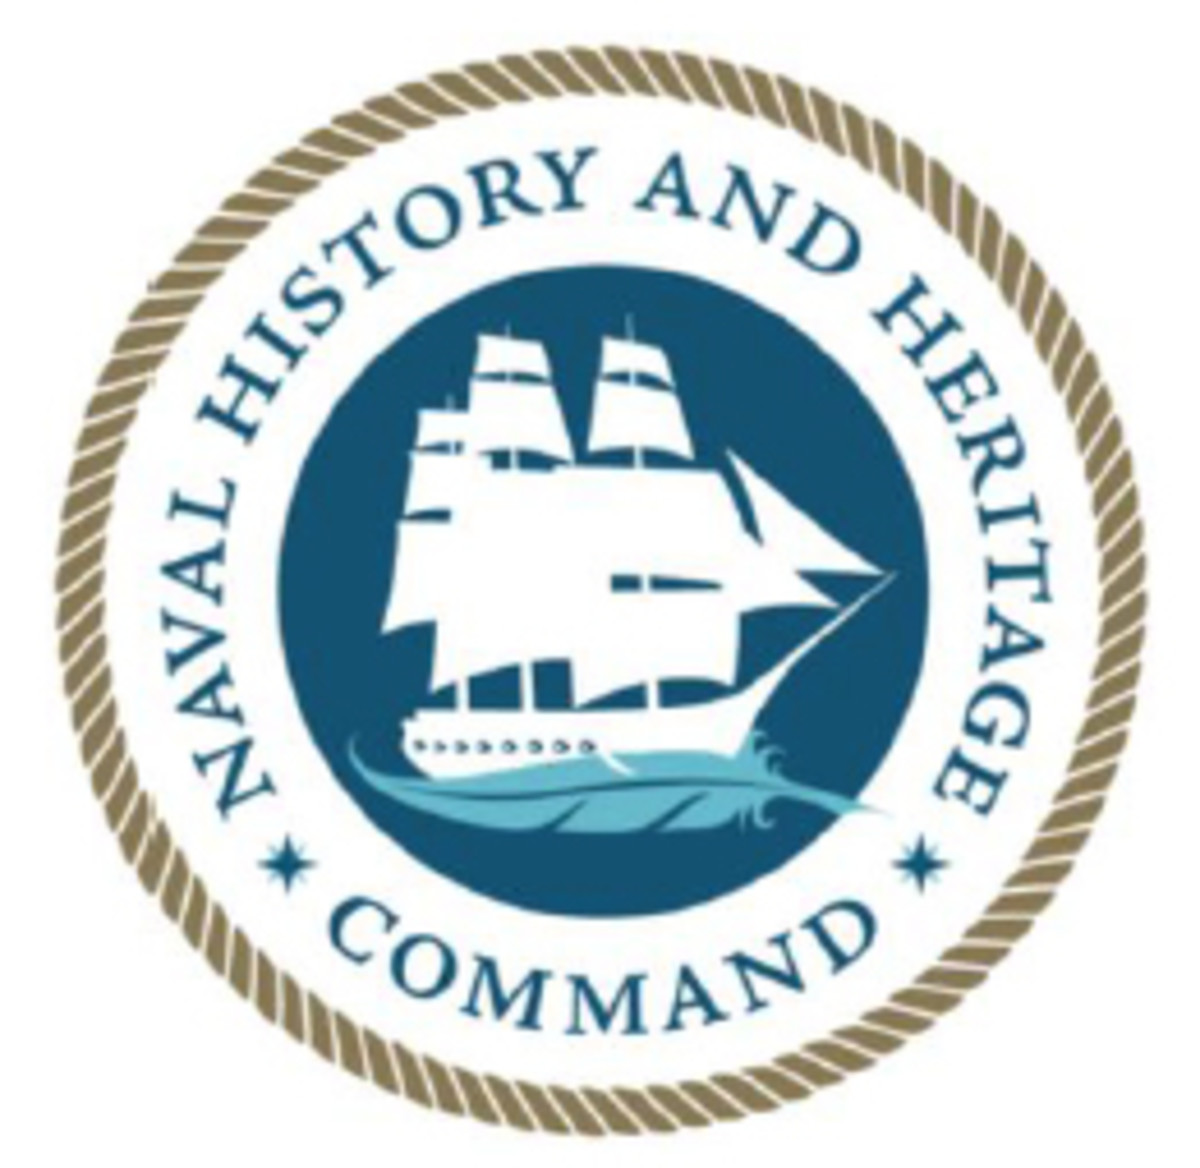 naval-history-and-heritage-logo